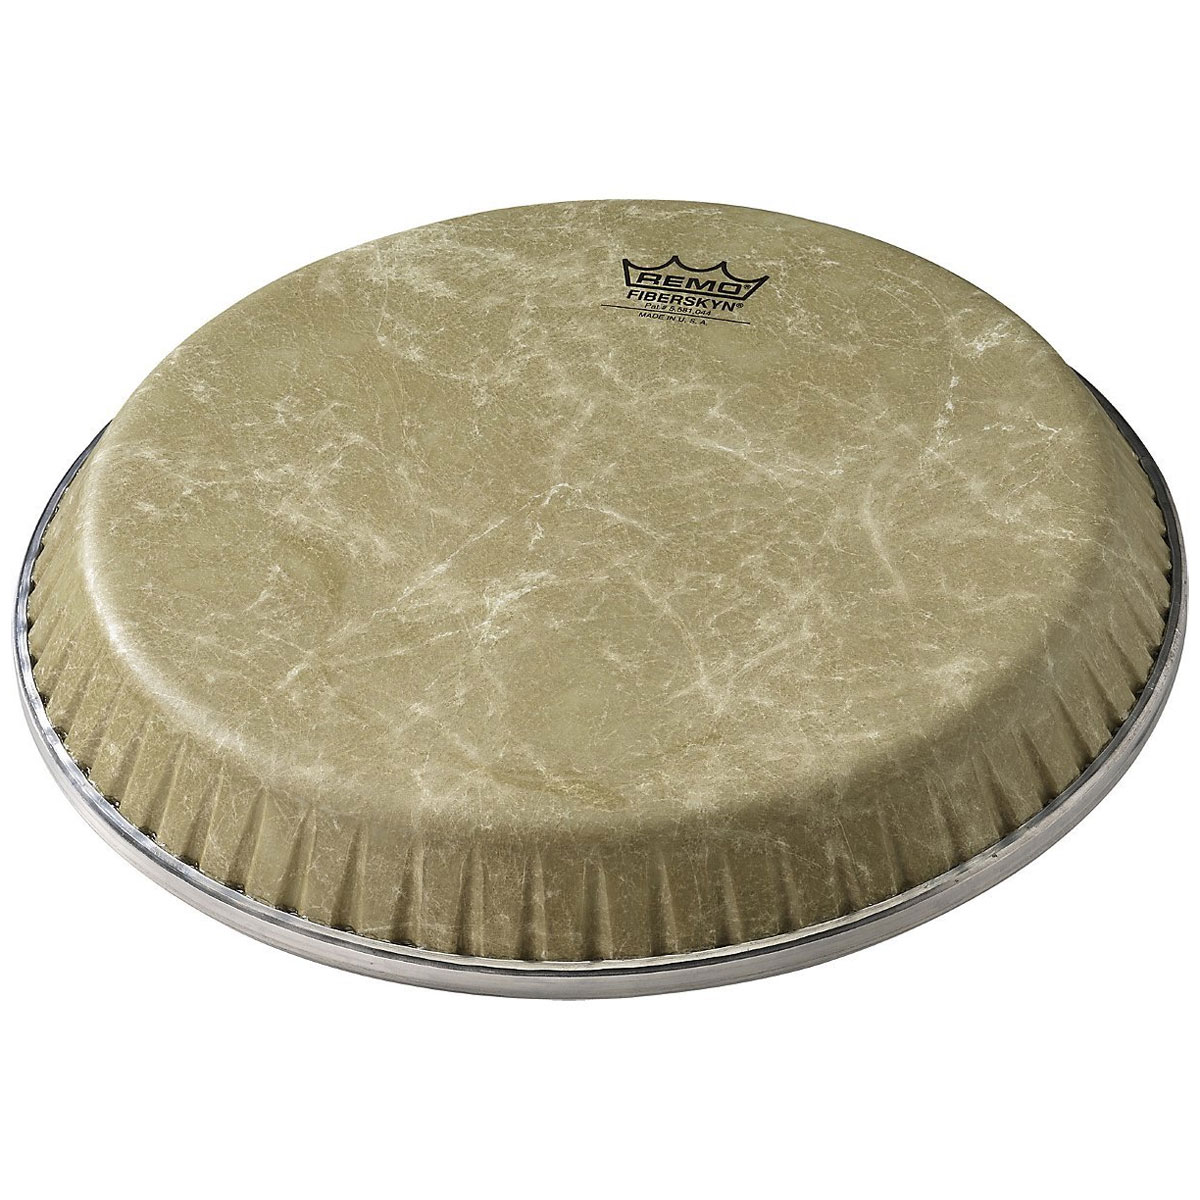 "Remo 11.06"" Symmetry Fiberskyn Quinto Conga Drum Head (D4 Collar)"